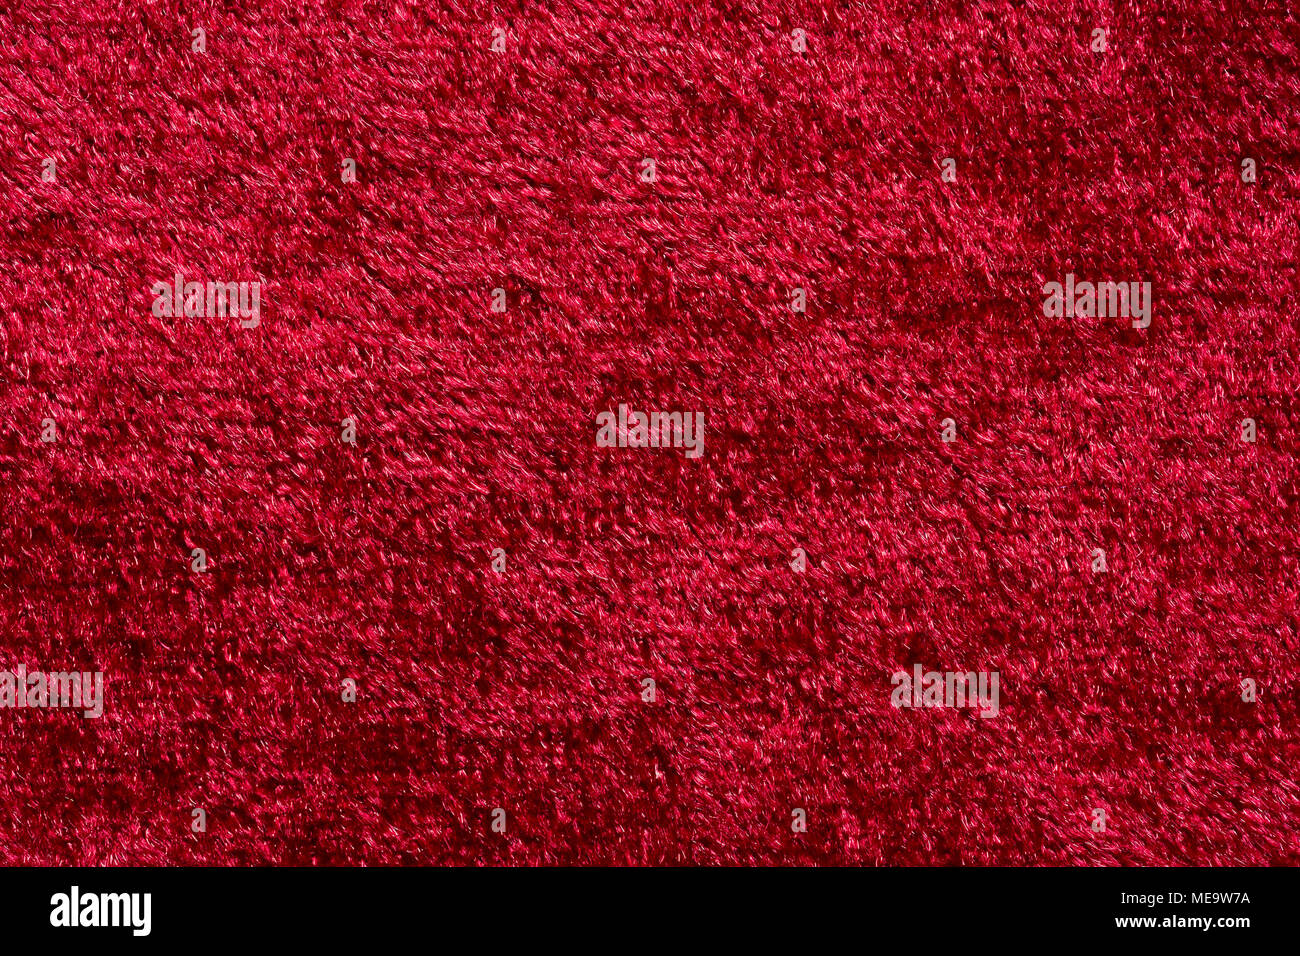 Contrast Soft Red Fabric Texture